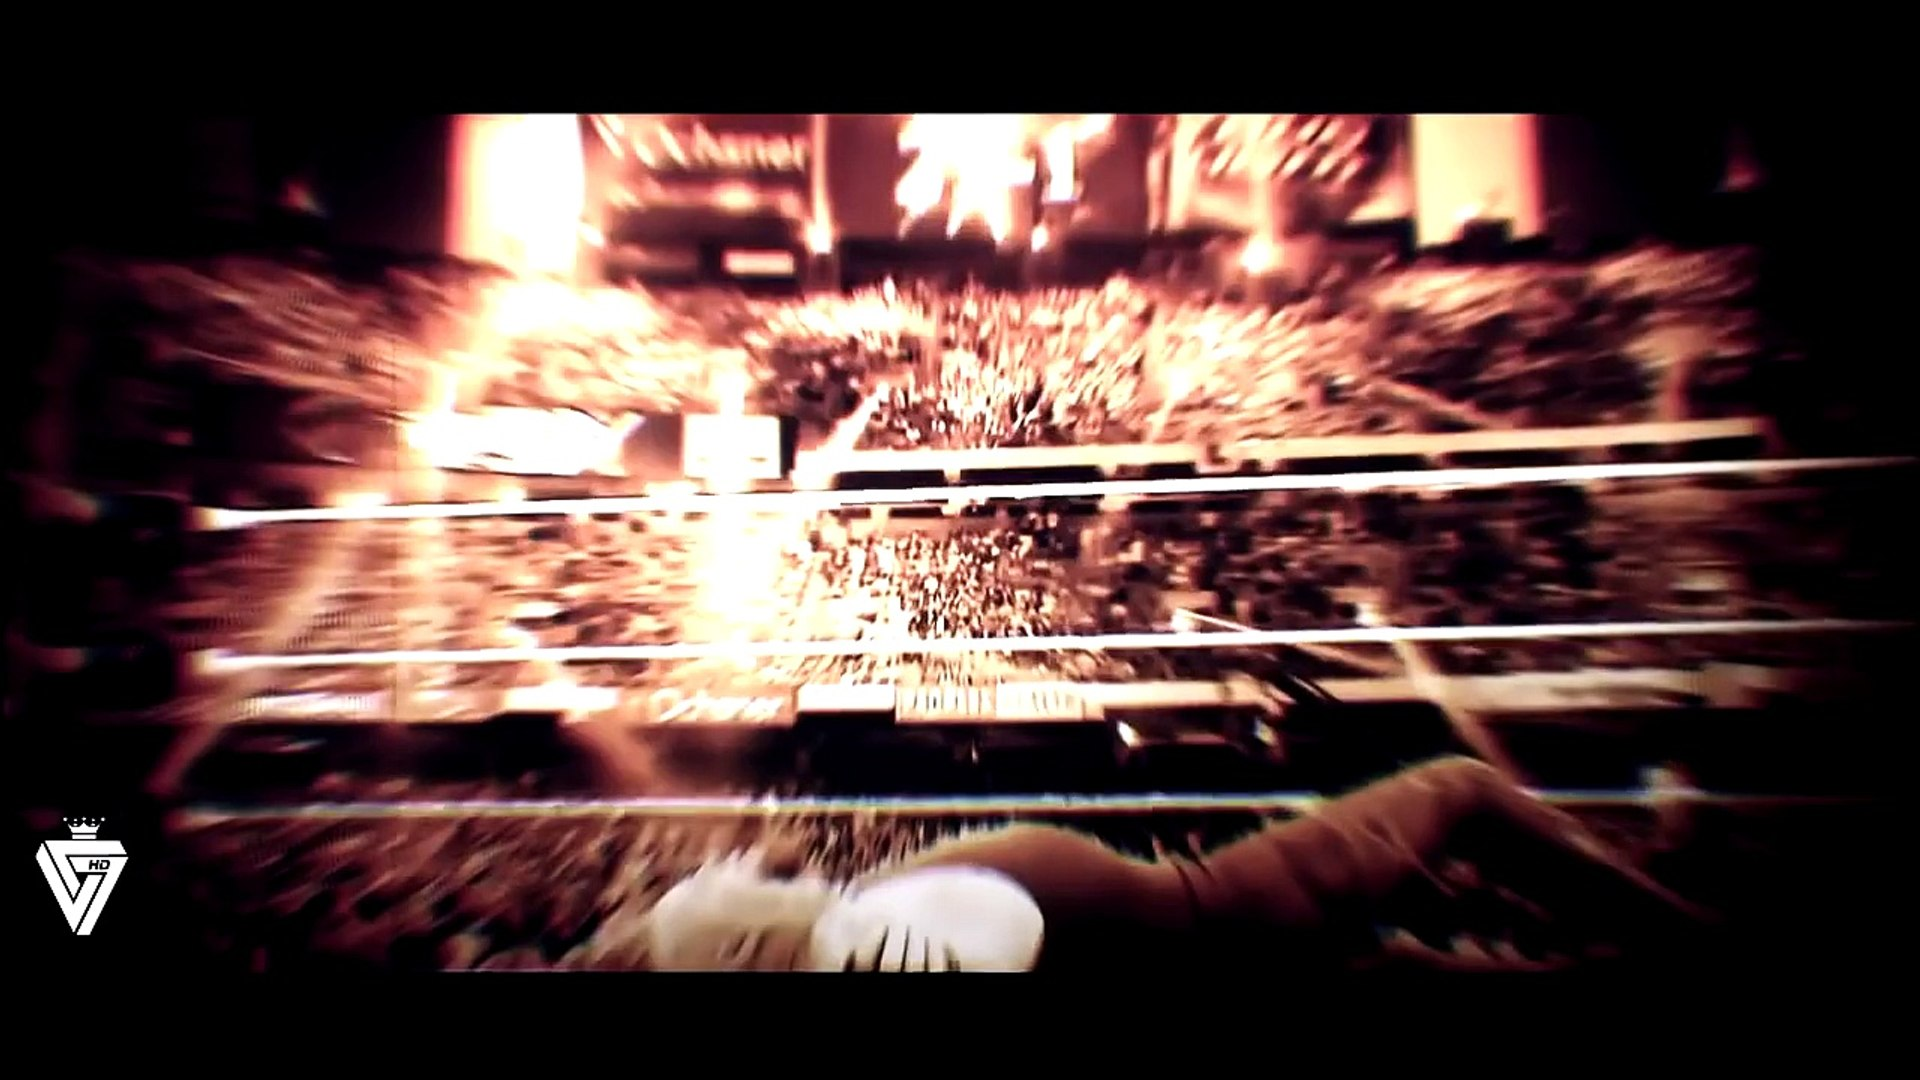 Hell In A Cell- Brock Lesnar Vs Under Taker 25 Oct 2015